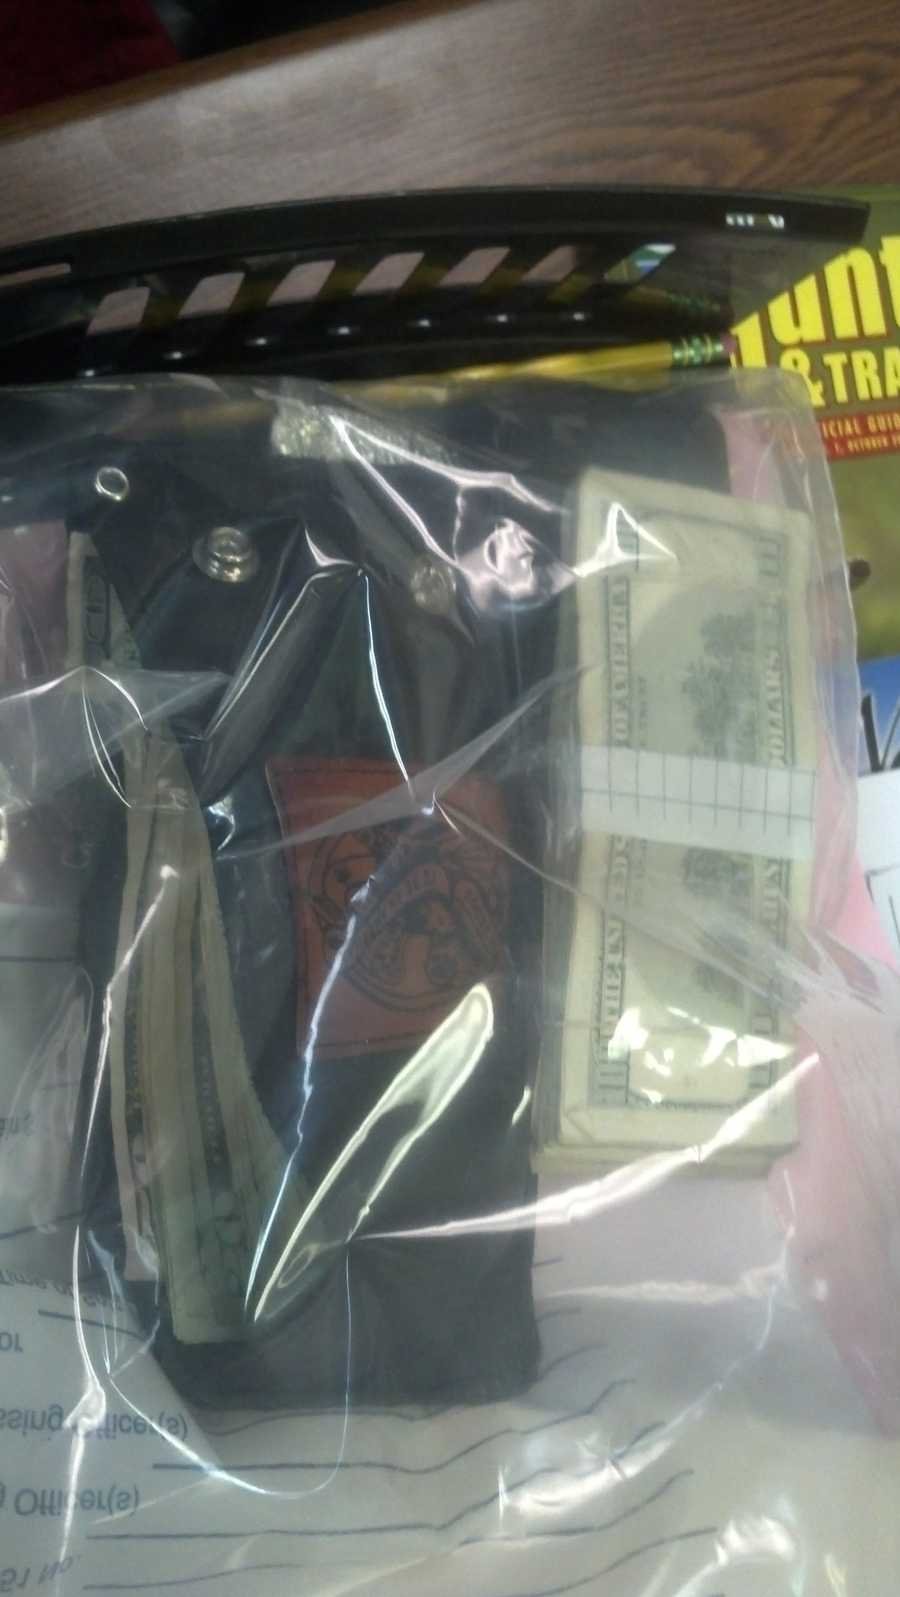 Money seized during Malone drug bust.